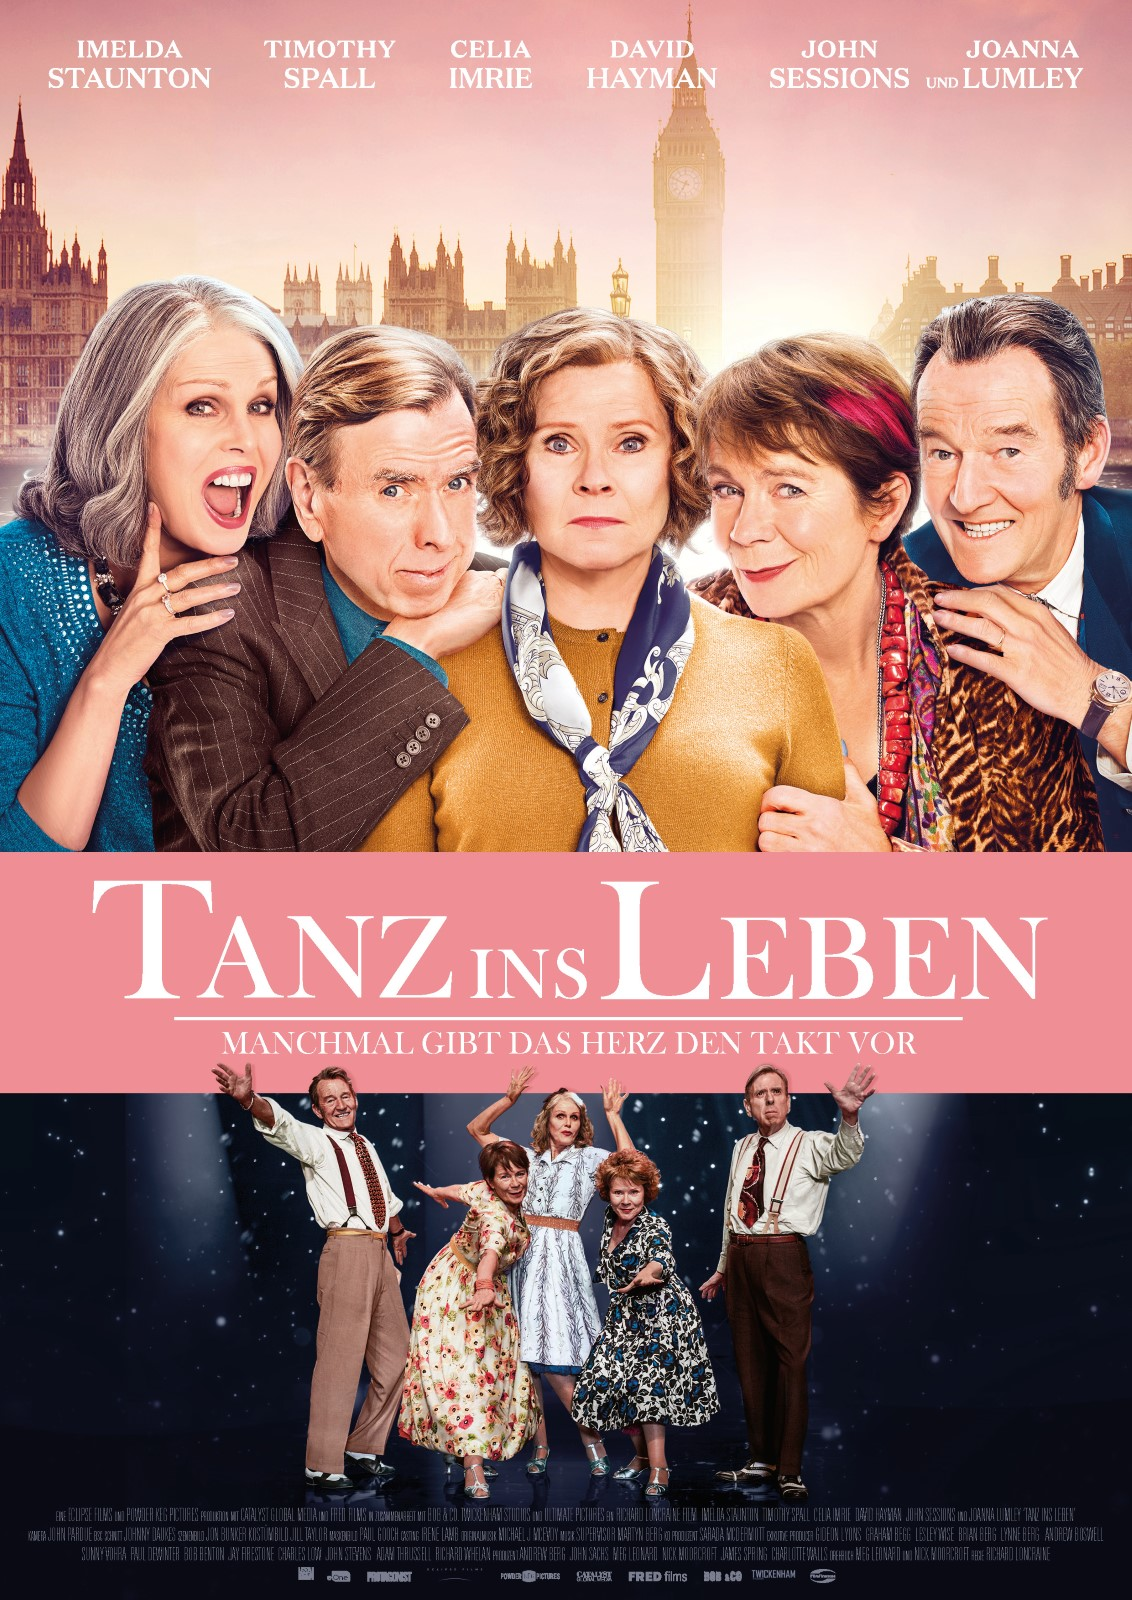 Tanz ins Leben / Finding Your Feet (2017) film auf deutsch stream german online